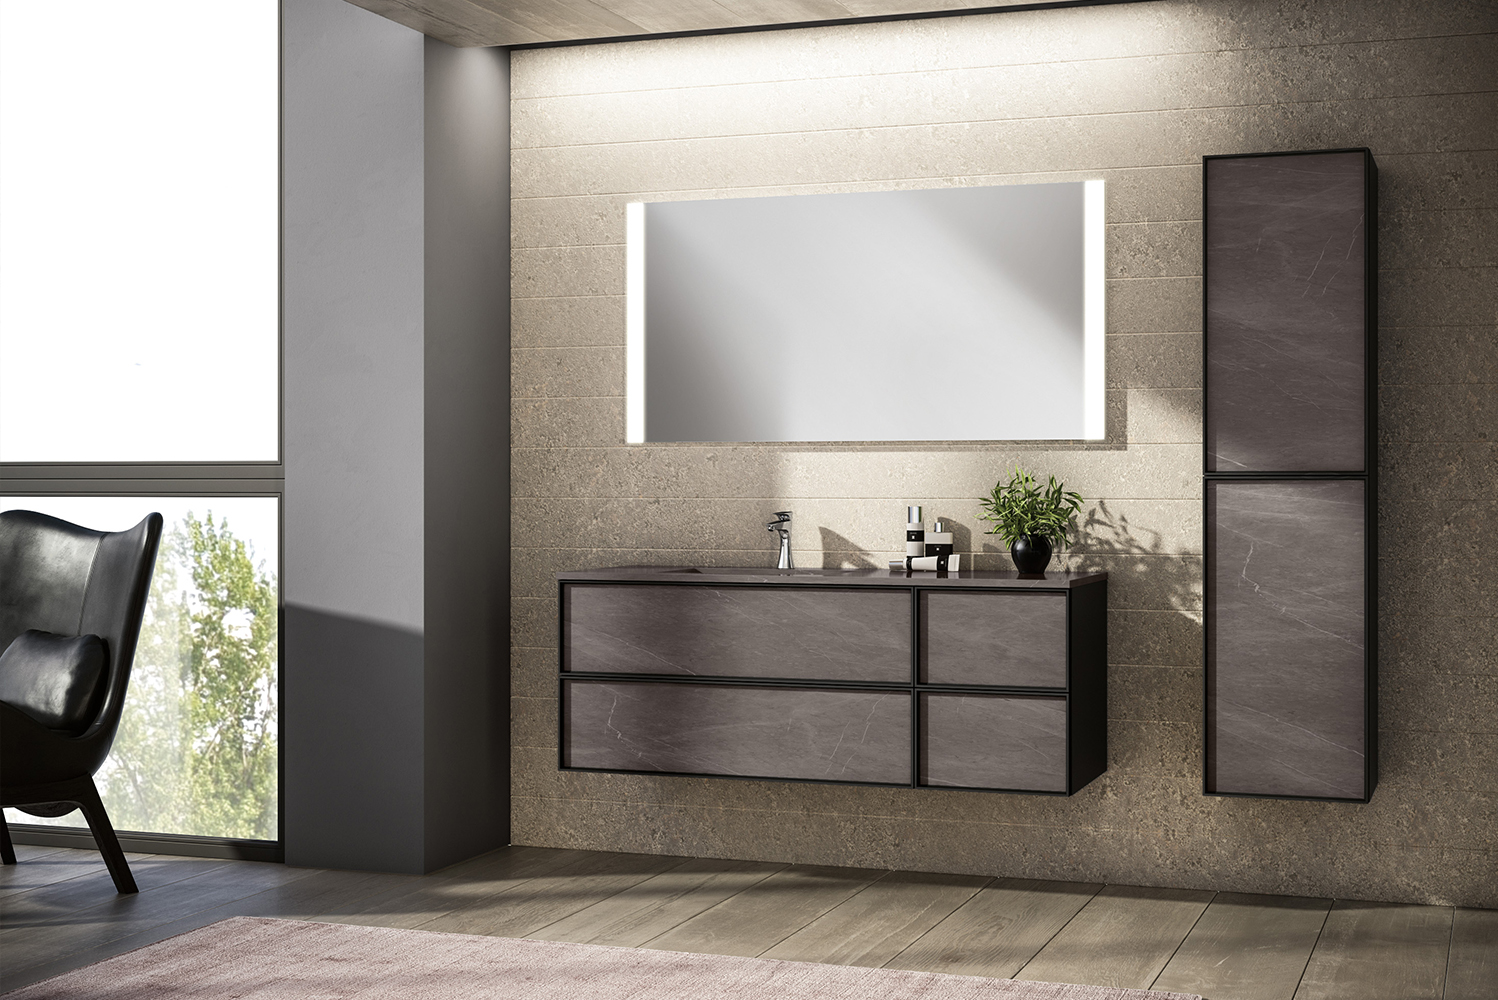 collection comes in a range of color and finish options and is distinguished by streamlined matte black metal frames for a clean, architectural style.